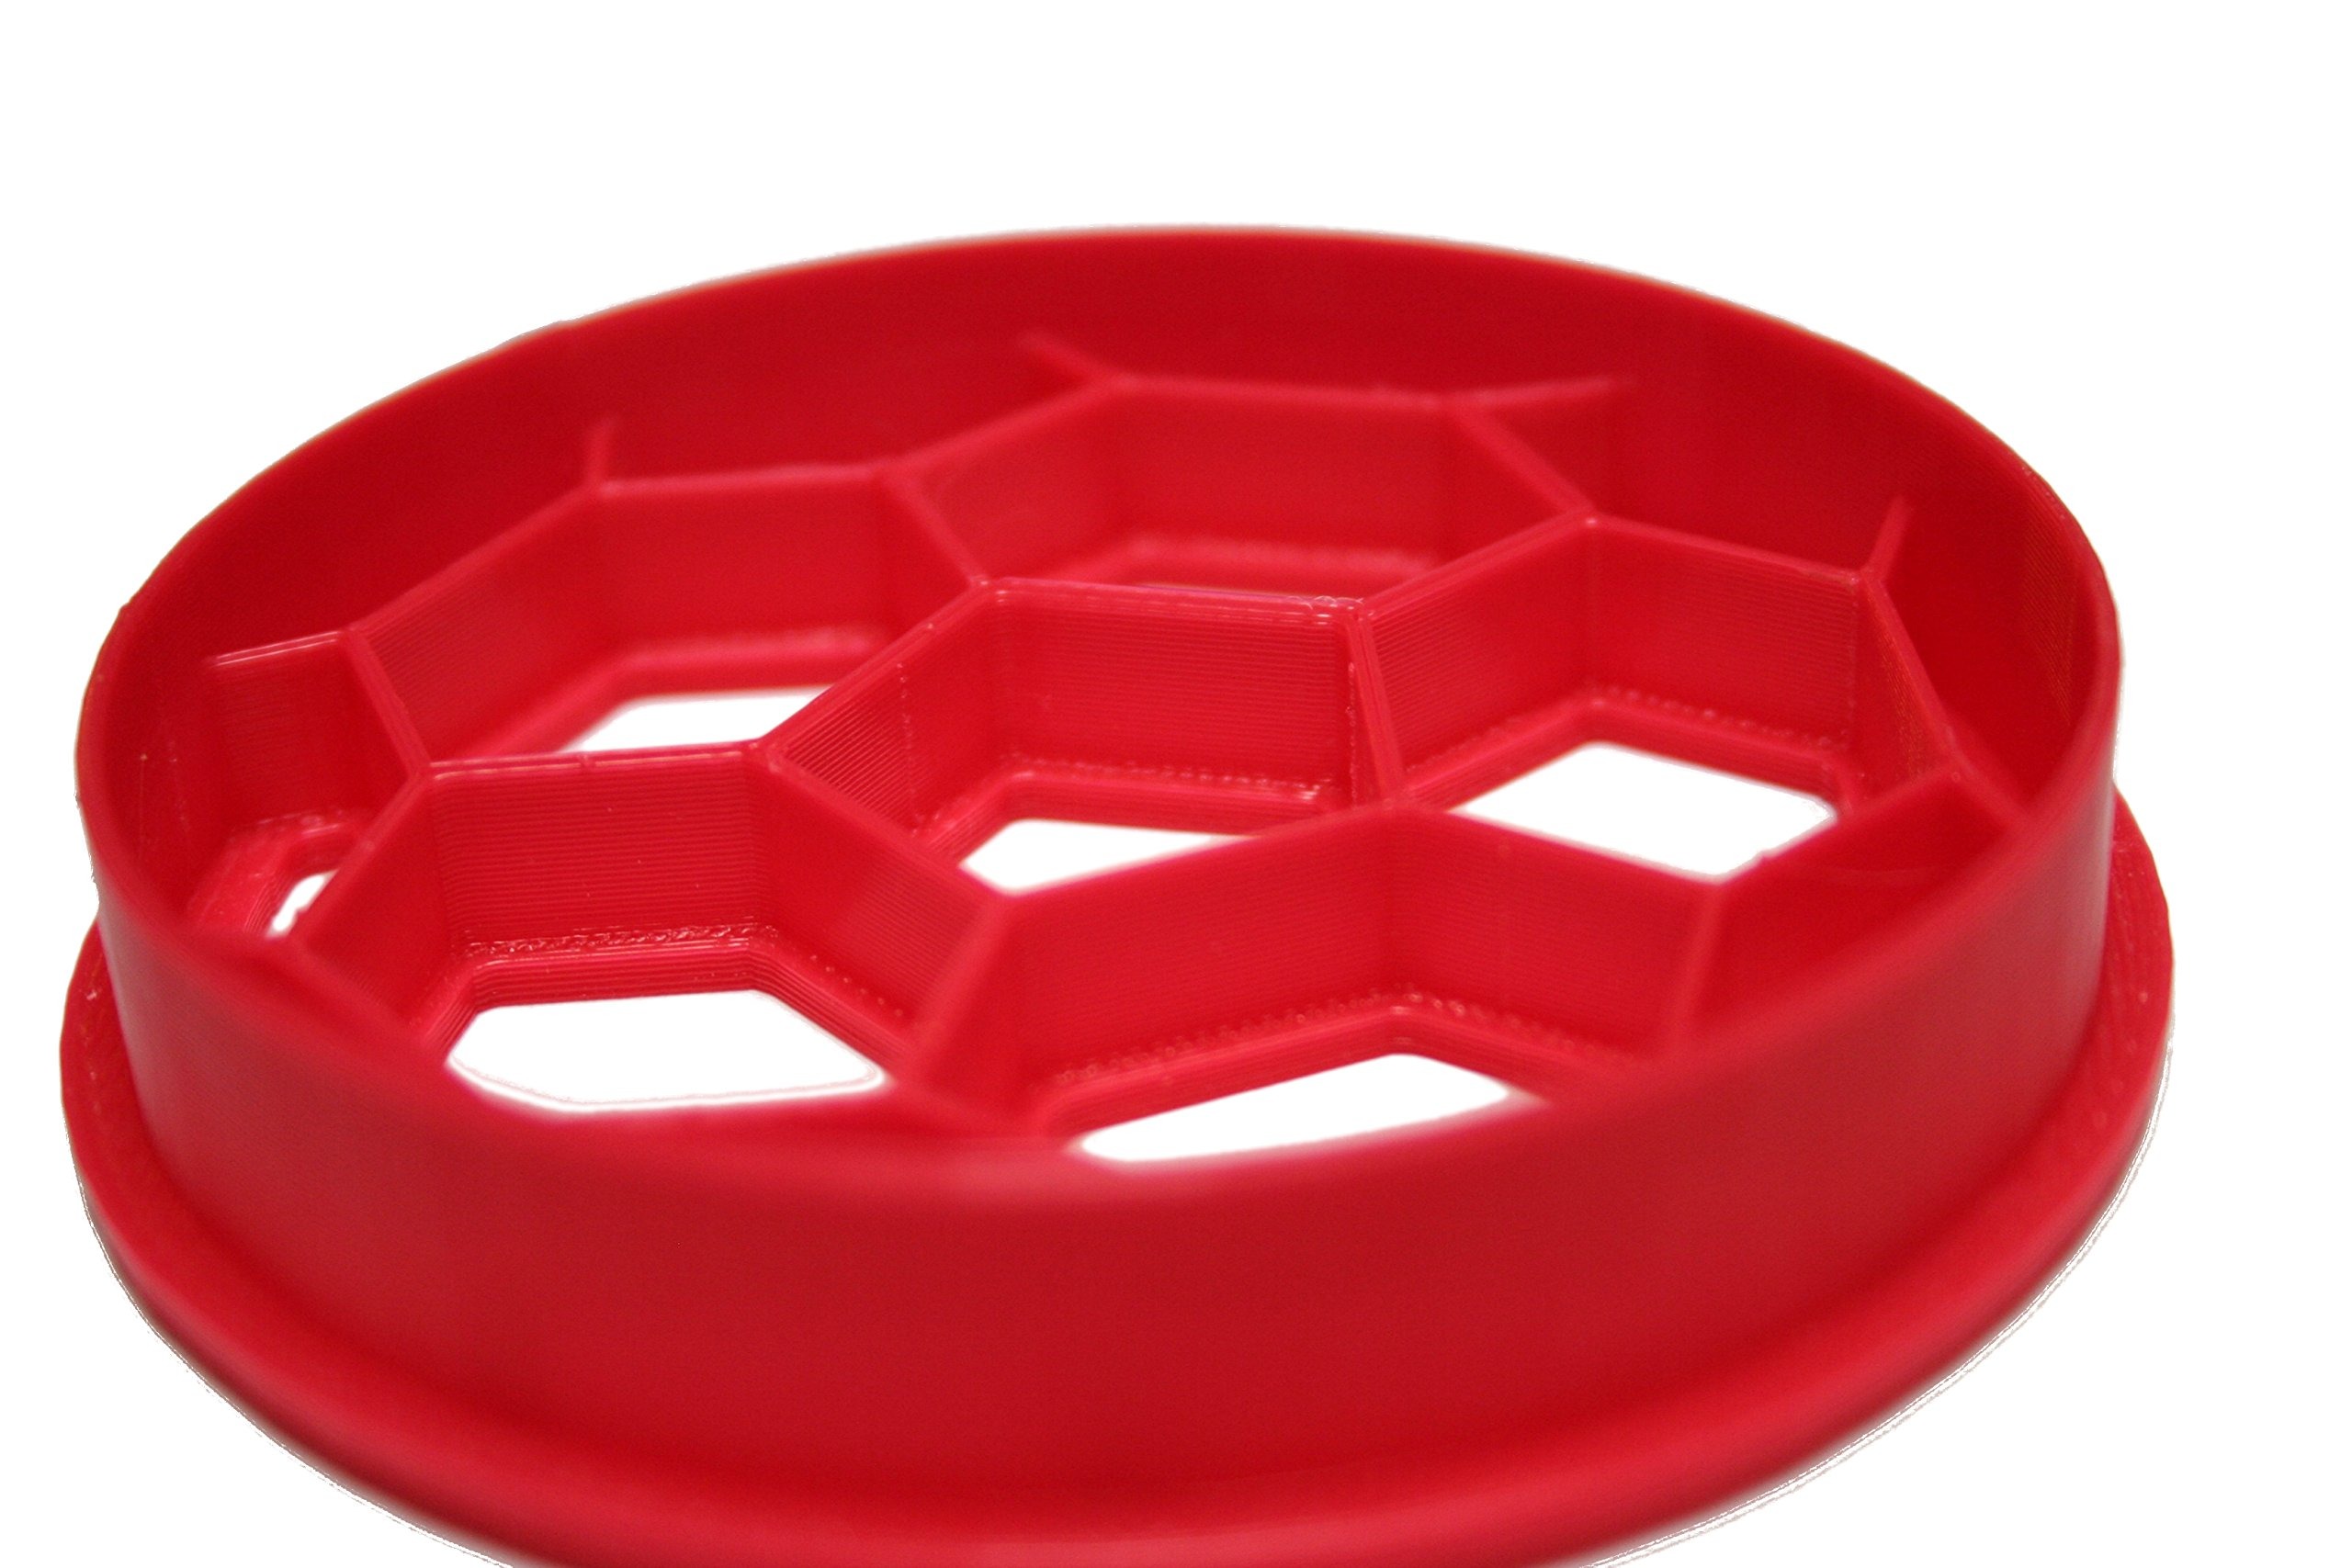 Soccer Ball Cookie Cutter 3 Approx. 3 inches wide by 3 inches tall HANDWASH ONLY Plastic-PLA